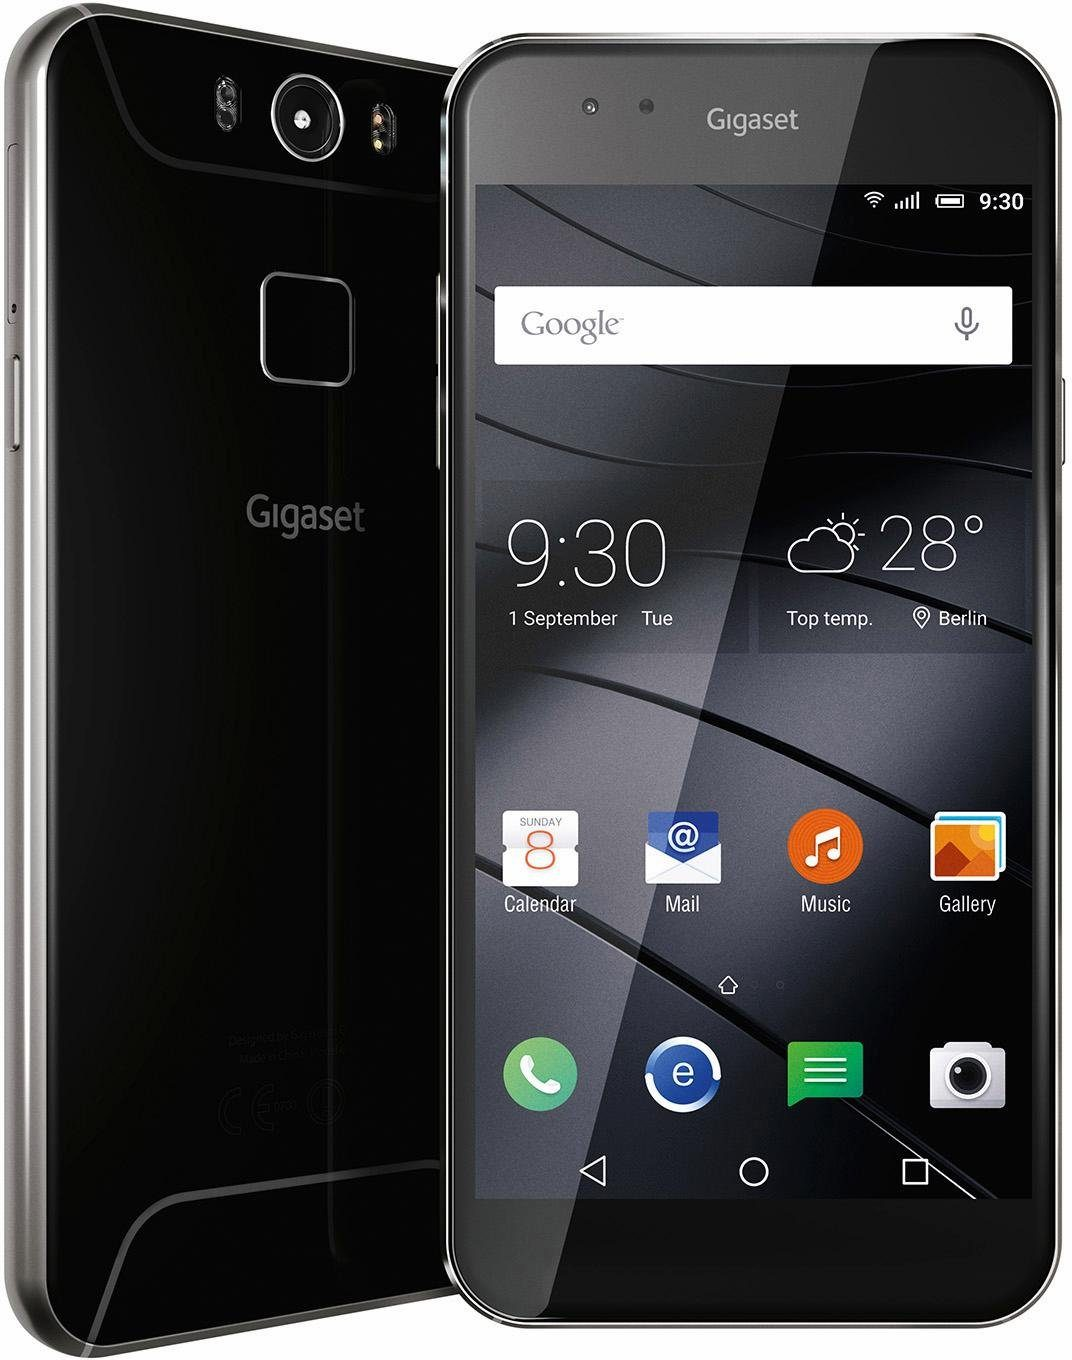 Gigaset ME Pro Smartphone, 13,97 cm (5,5 Zoll) Display, LTE (4G), Android™ Lollipop 5.1.1